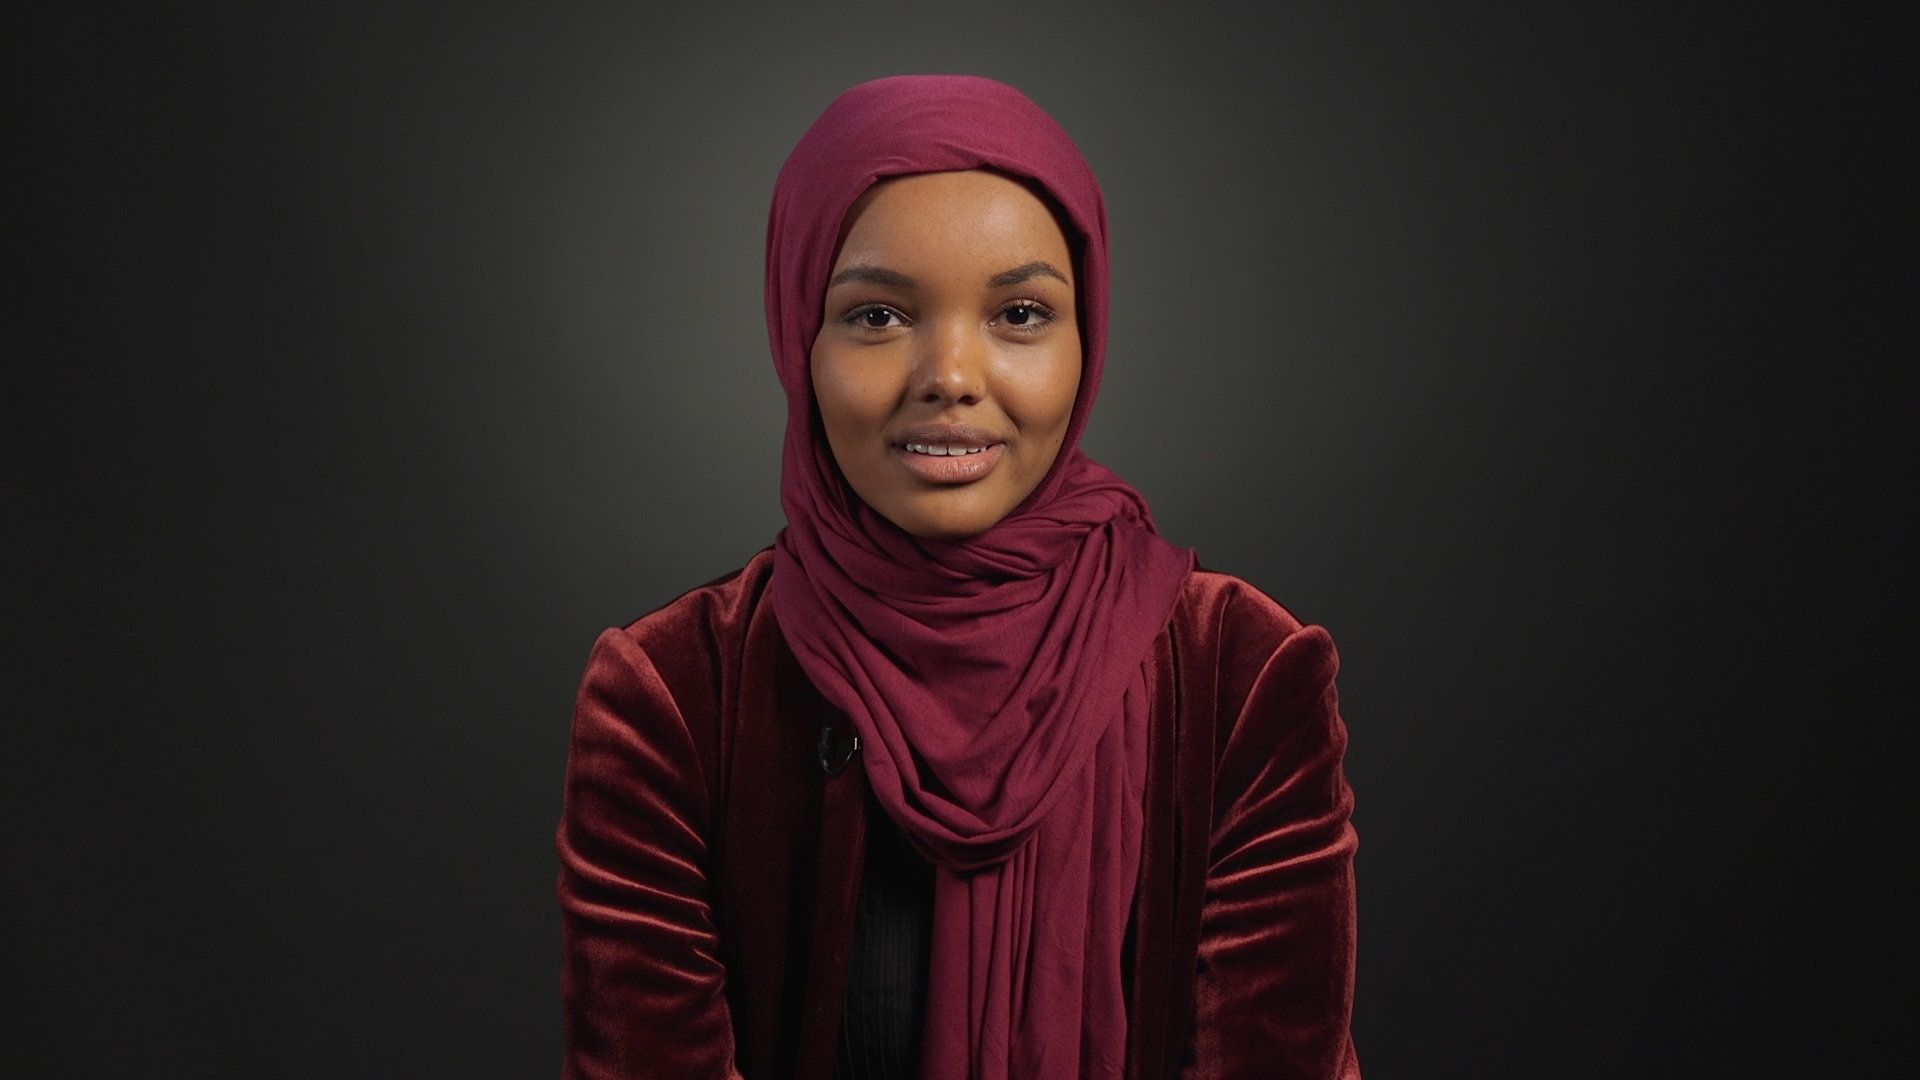 Halima Aden was born in a refugee camp in Kenya She has a message for those who try to demonize immigrants